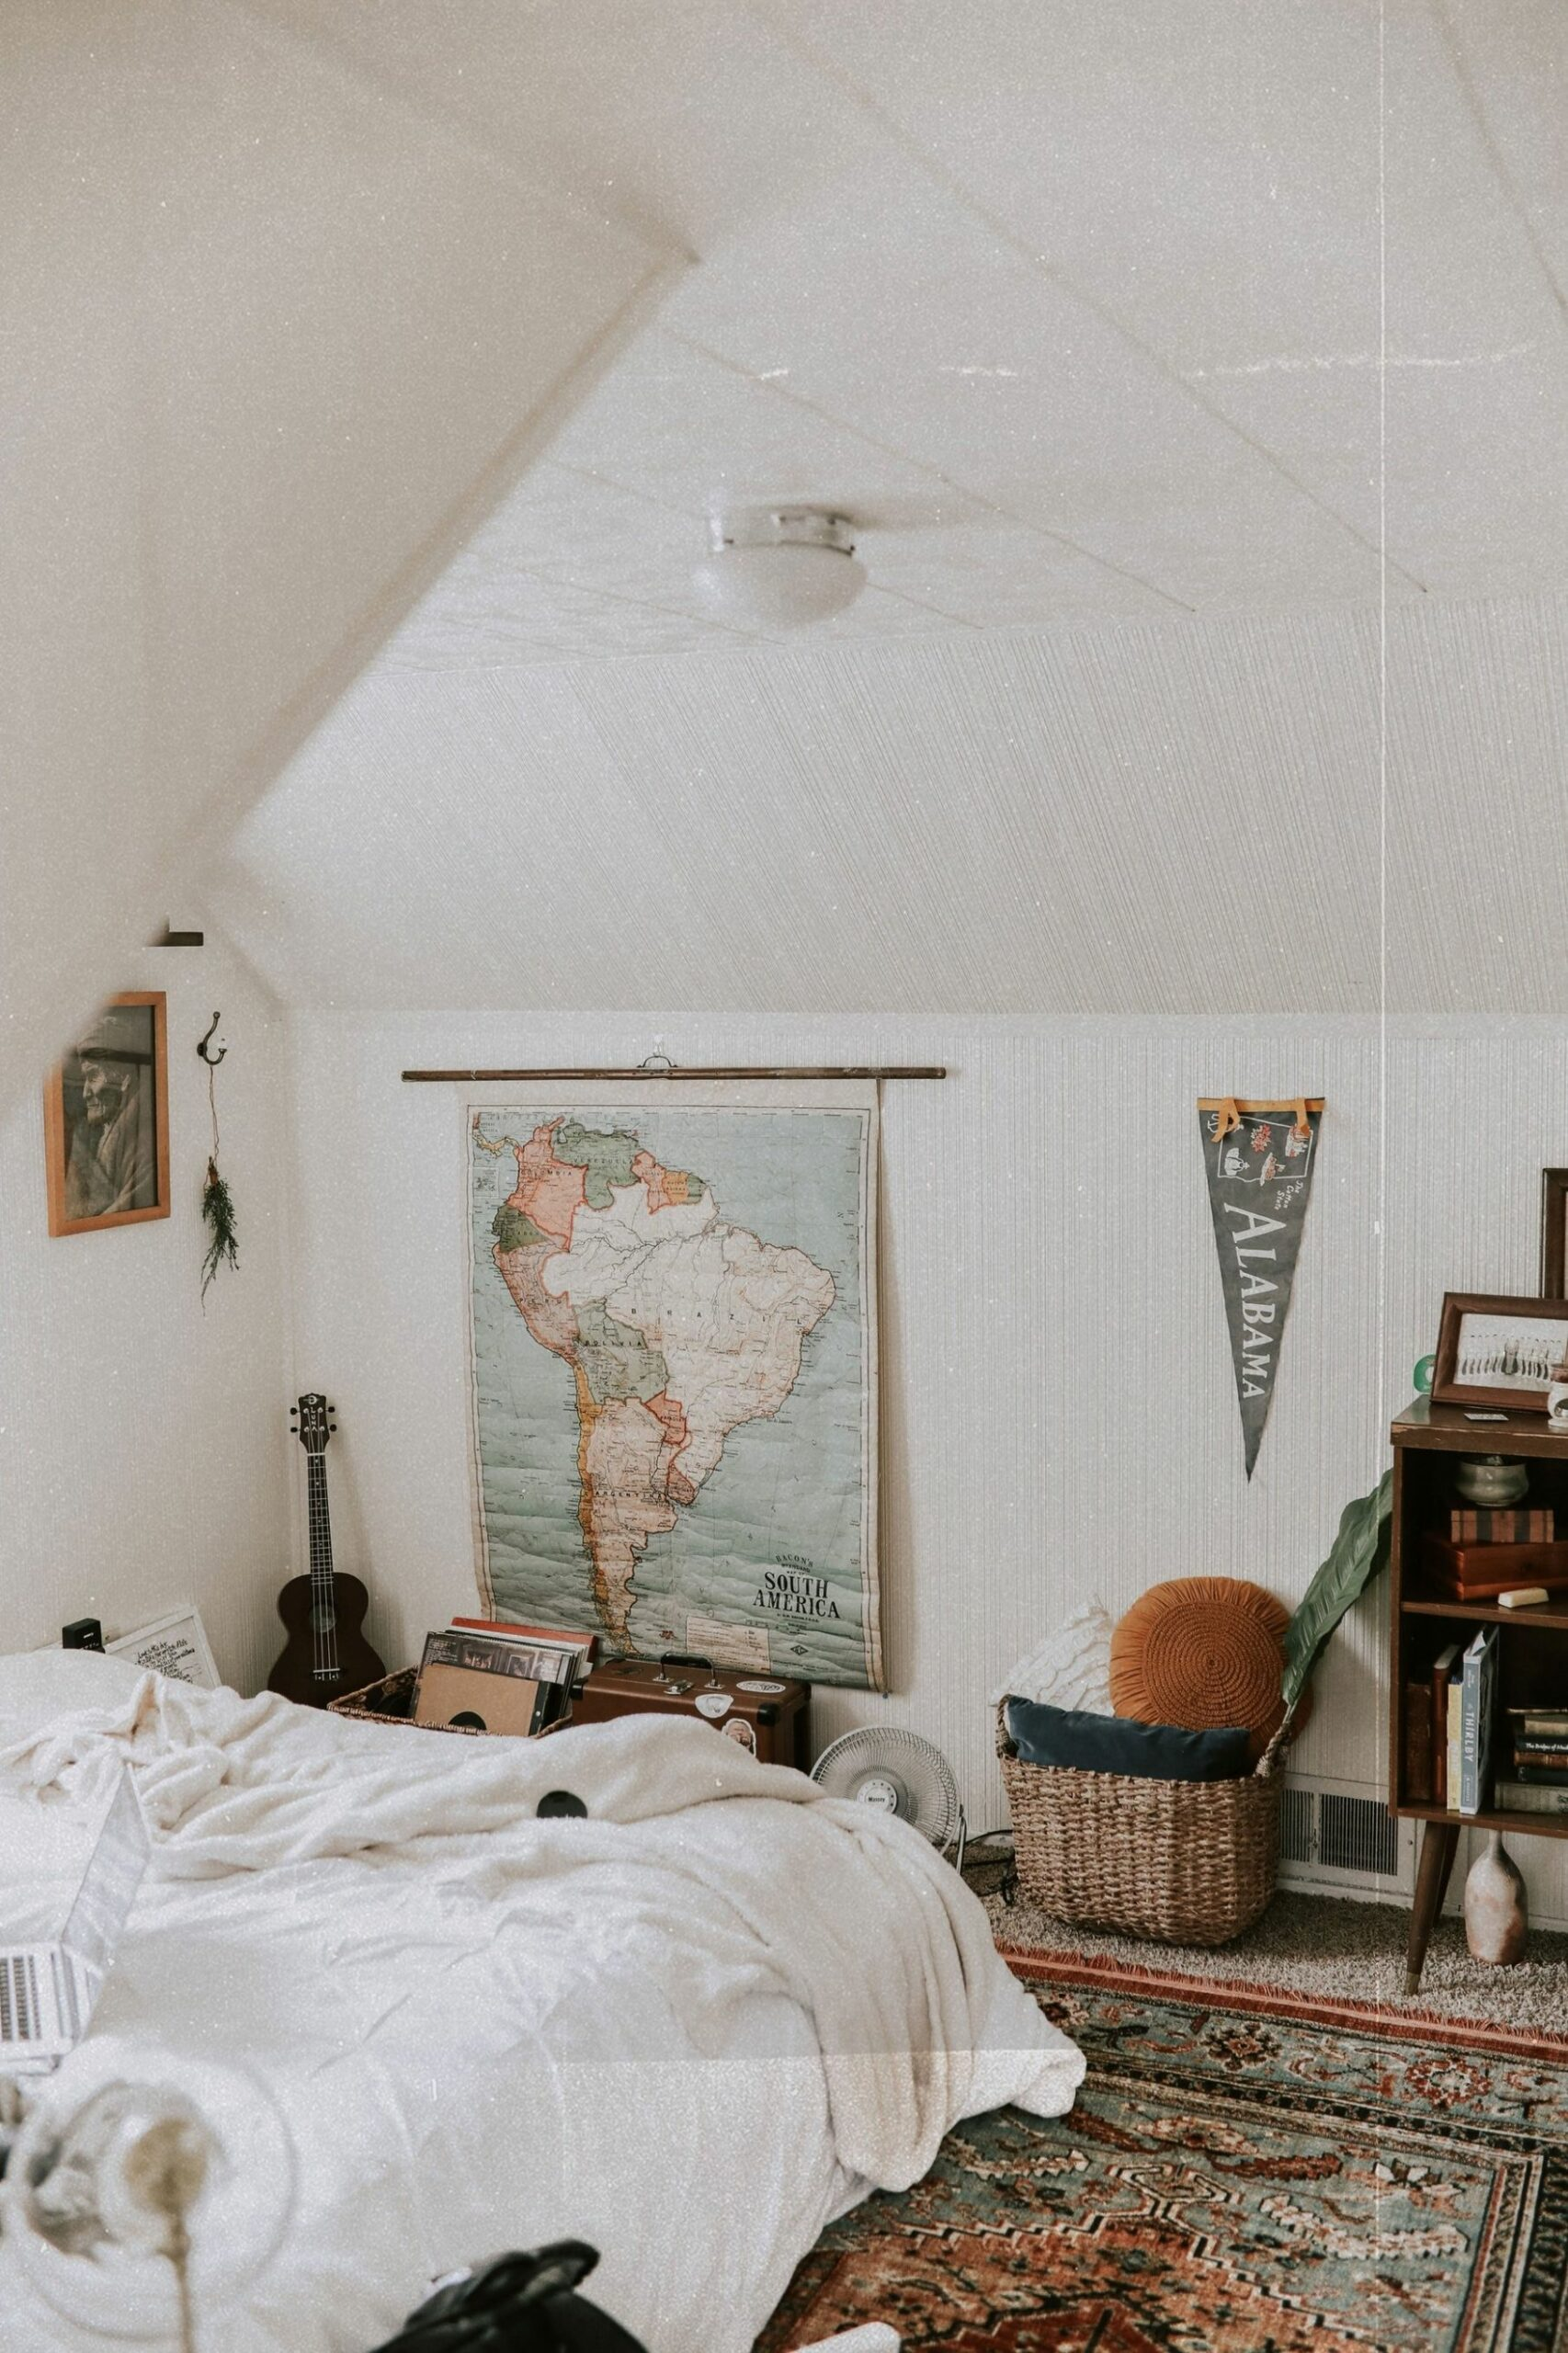 The Best Dorm Room Decor Ideas, According to Your Major | Her Campus